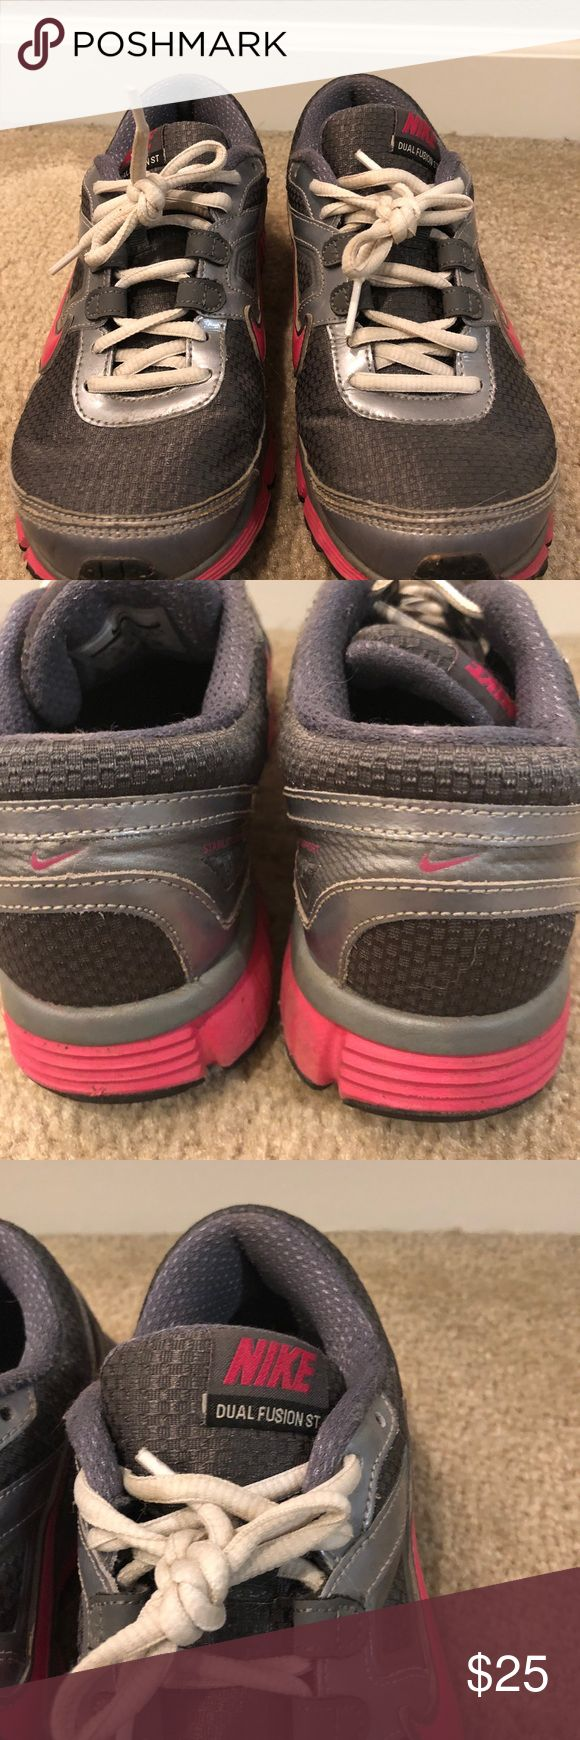 Dual Fusion Nike Shoes Lots of comfort and support for your feet. Great for  long distance running. Only used a couple times. In good condition.